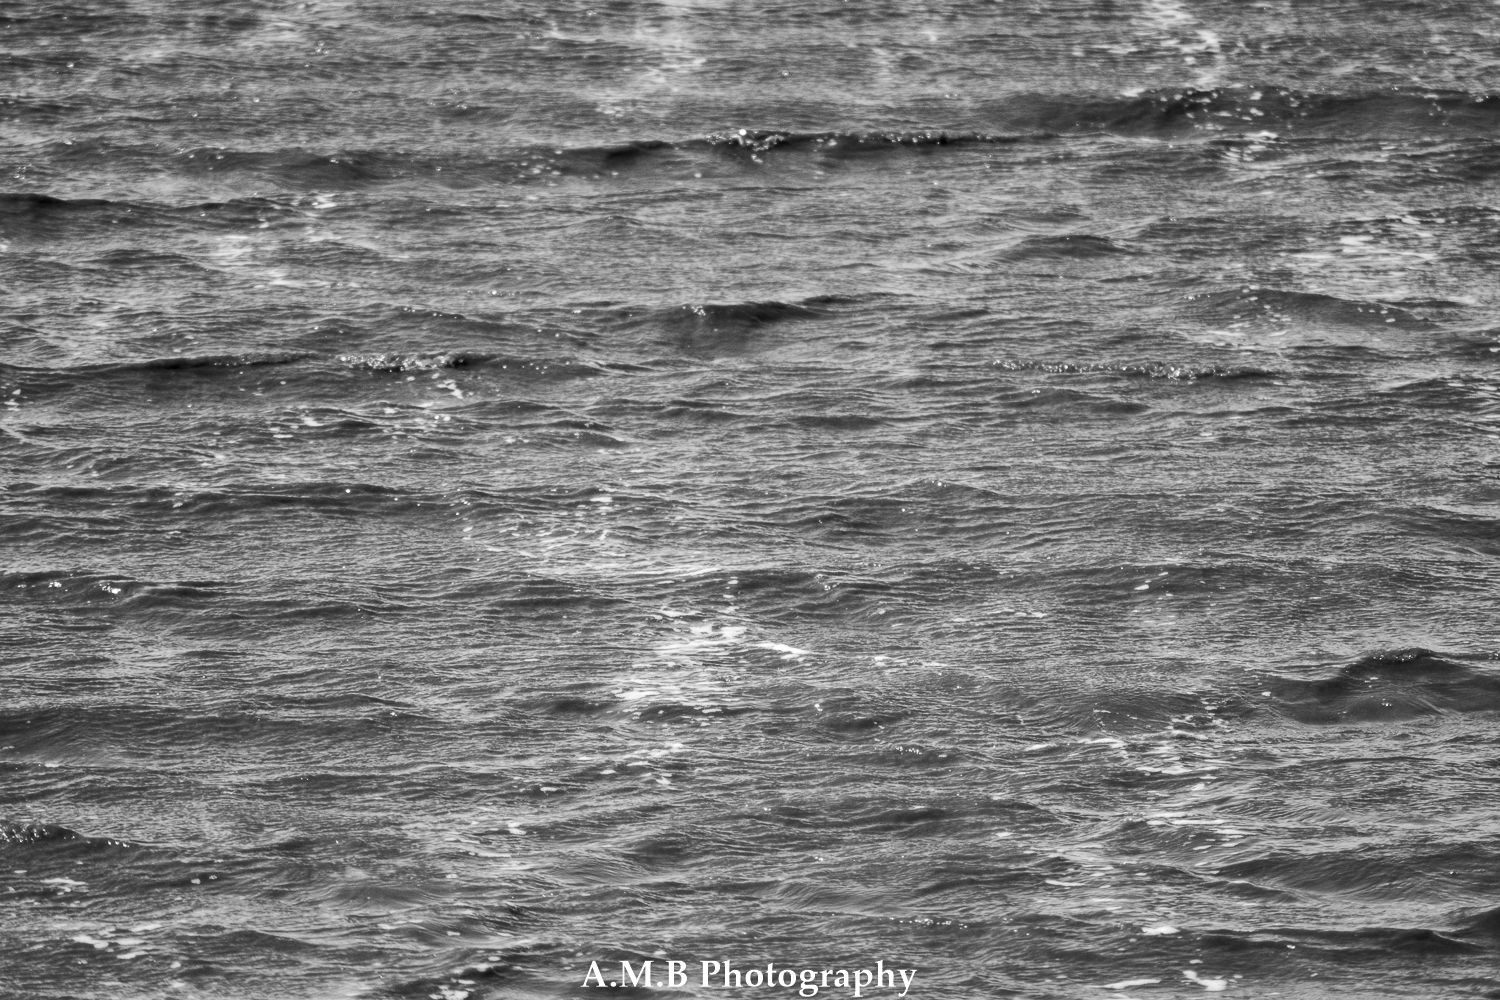 Black and White Flood Waves